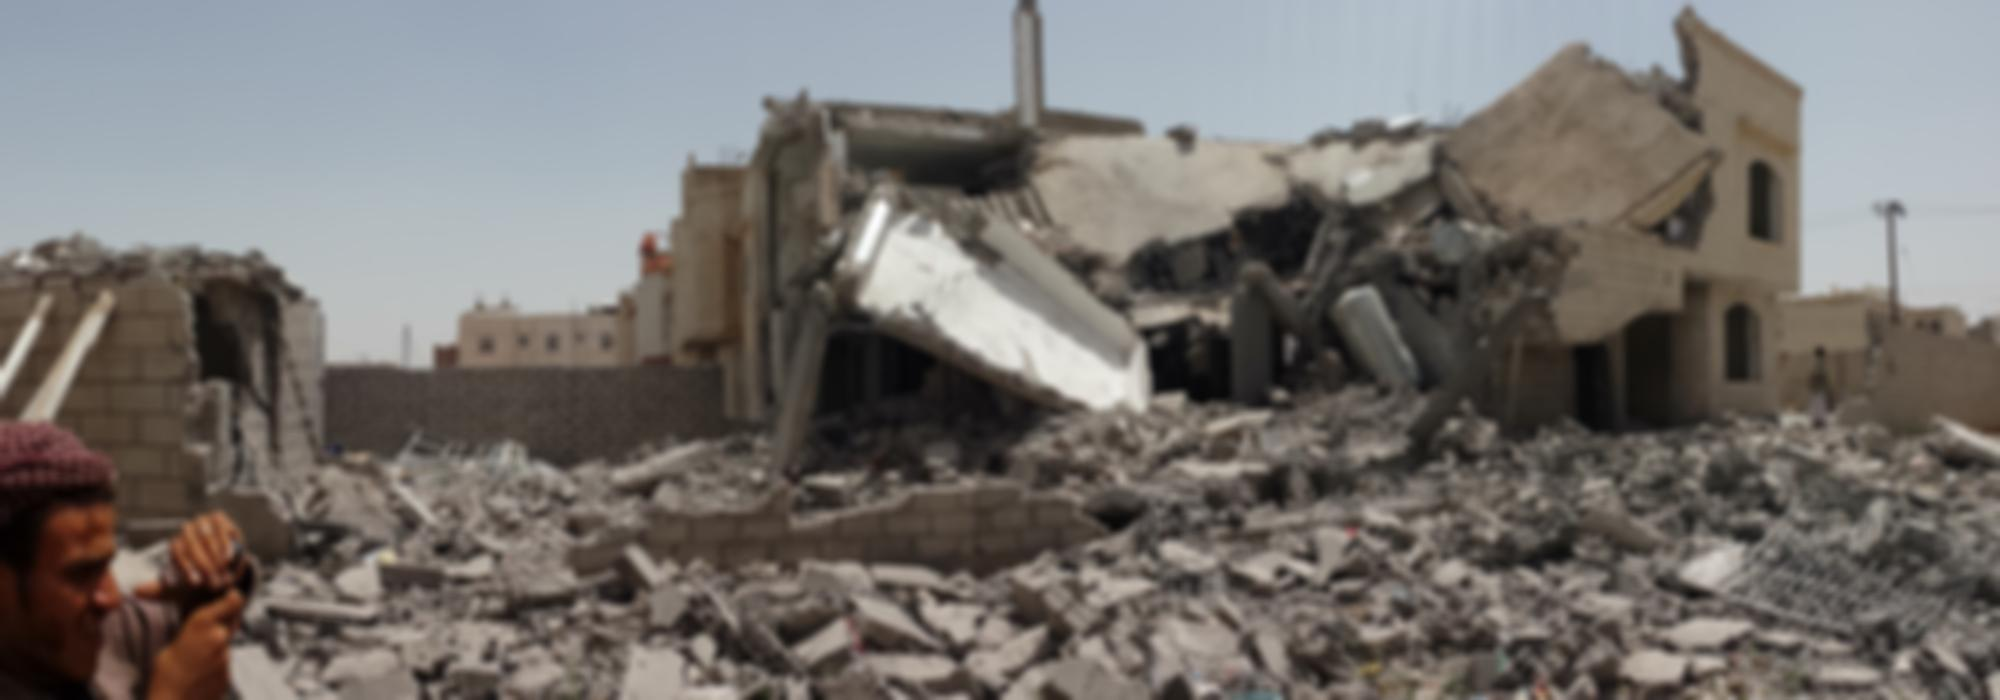 Destroyed house in South of Sanaa